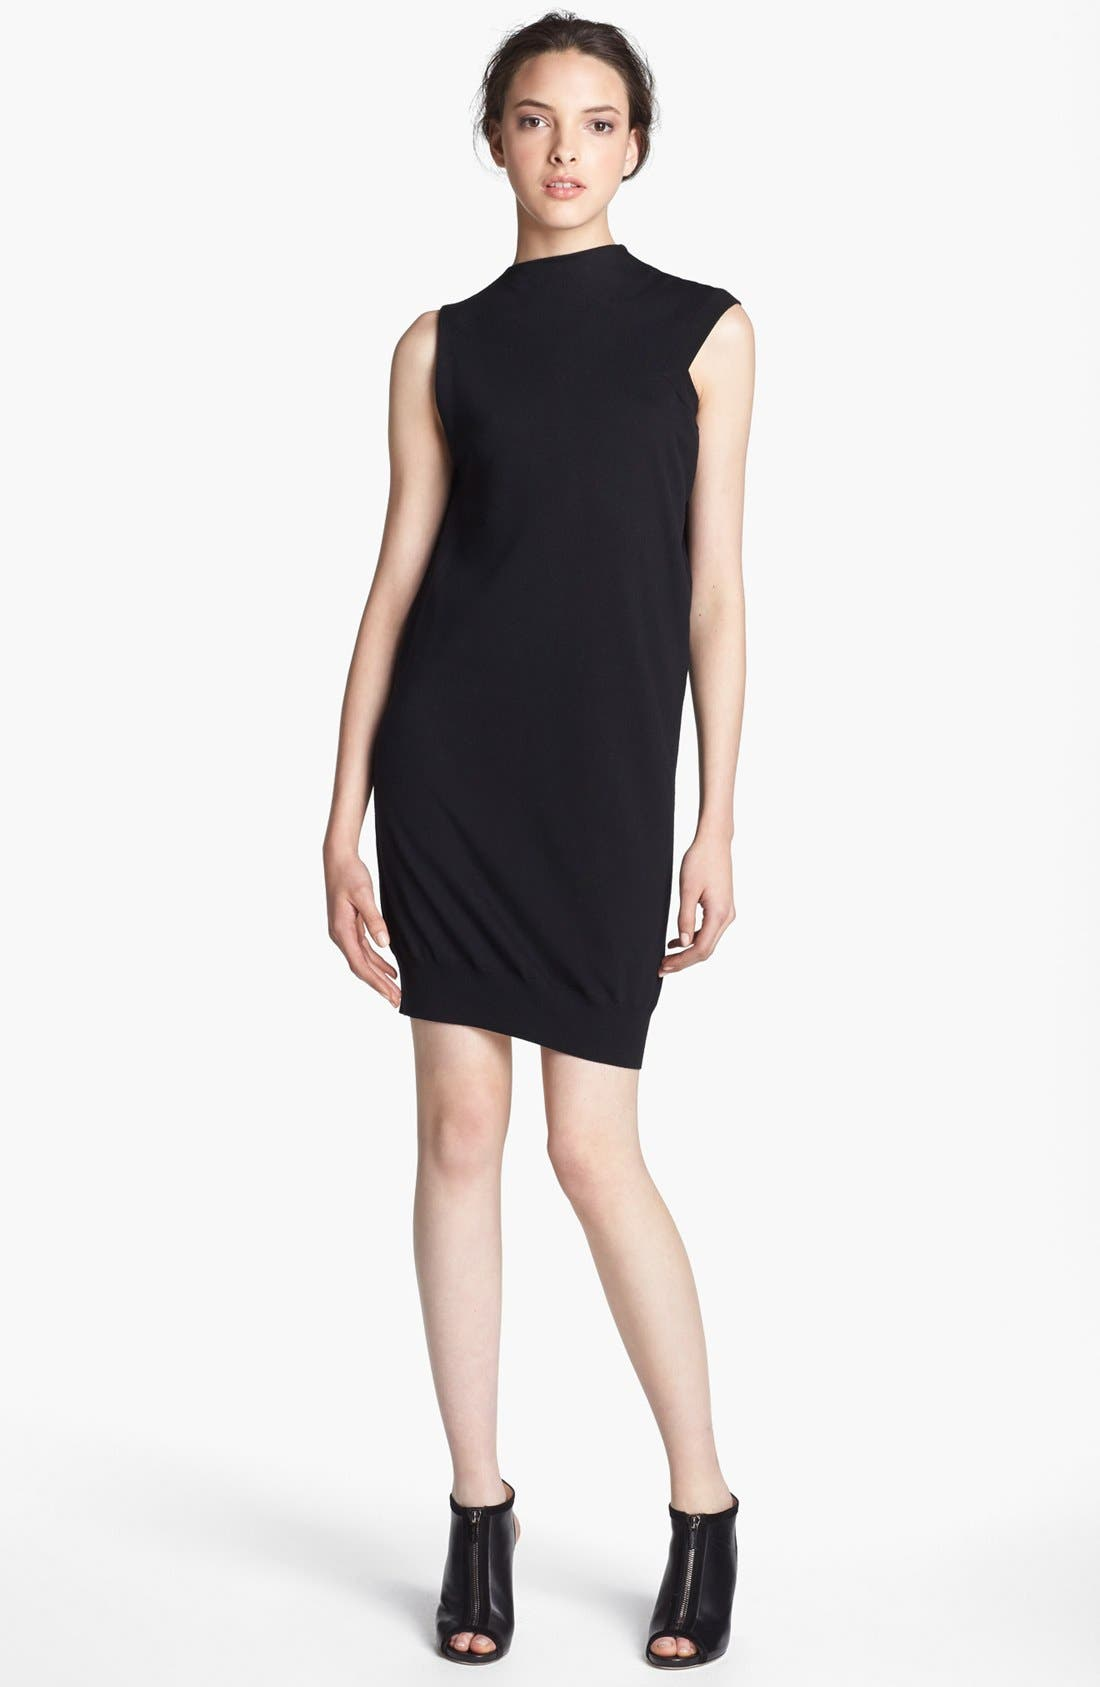 Main Image - Alexander Wang Sleeveless Wool Knit Dress